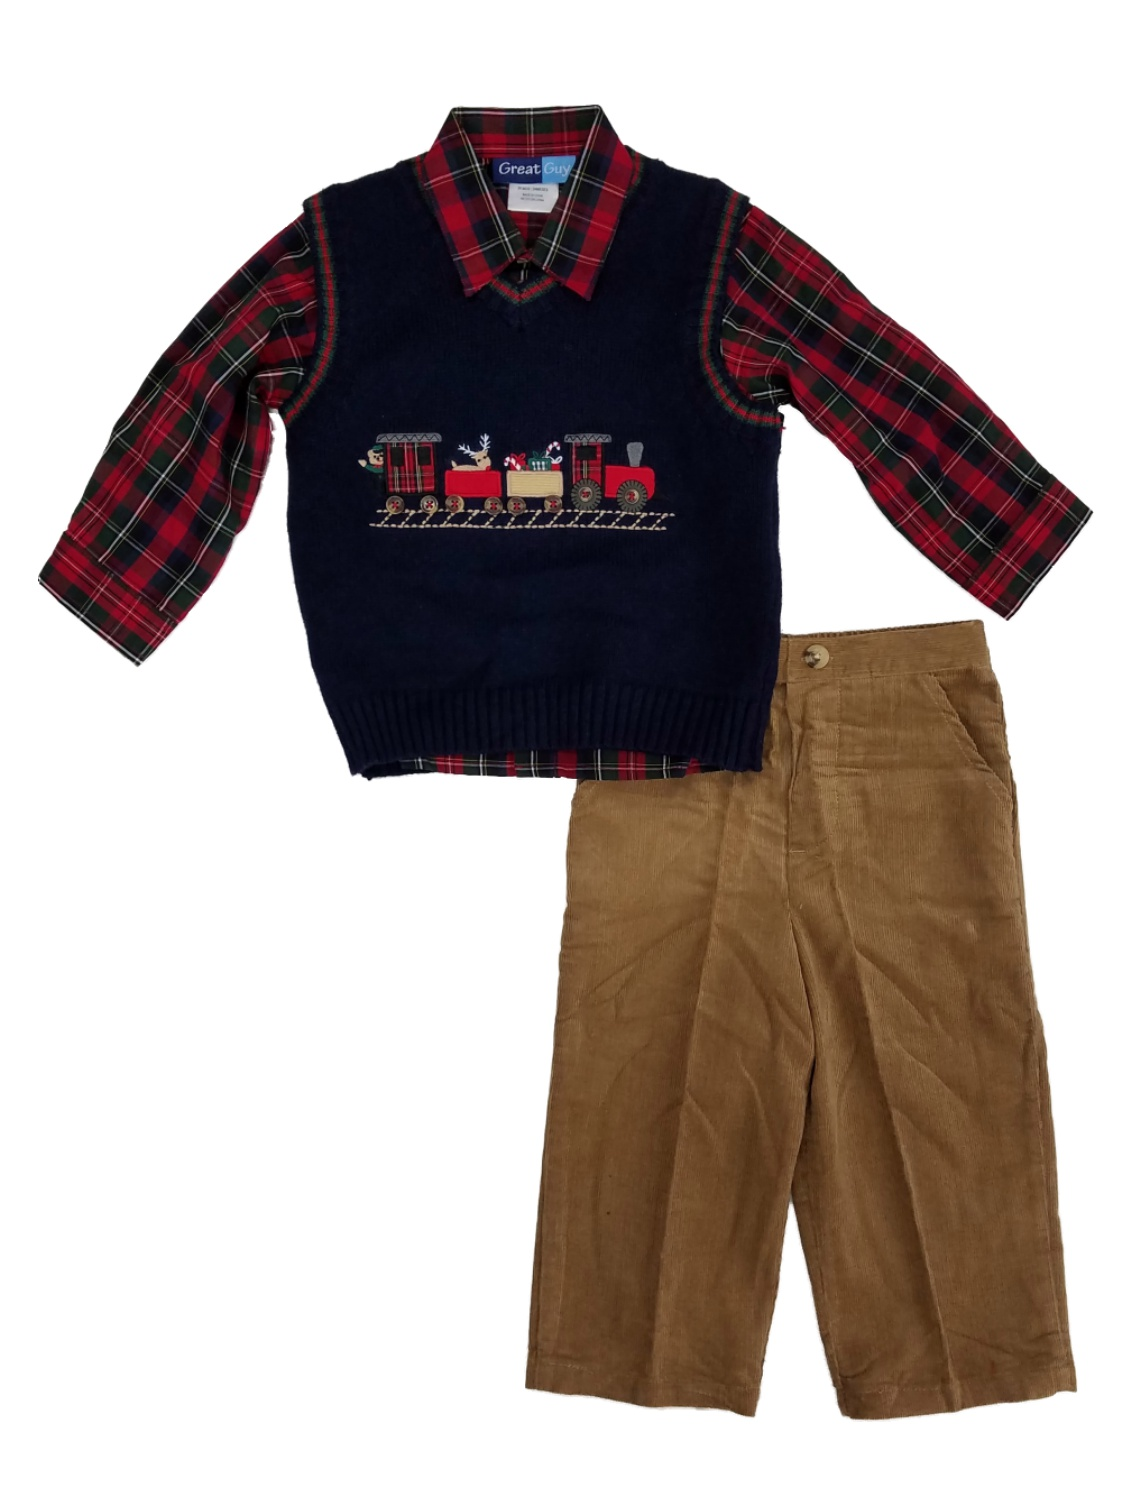 d4c107e38 Great Guy - Infant Boys 3pc Holiday Outfit Sweater Vest Plaid Shirt ...